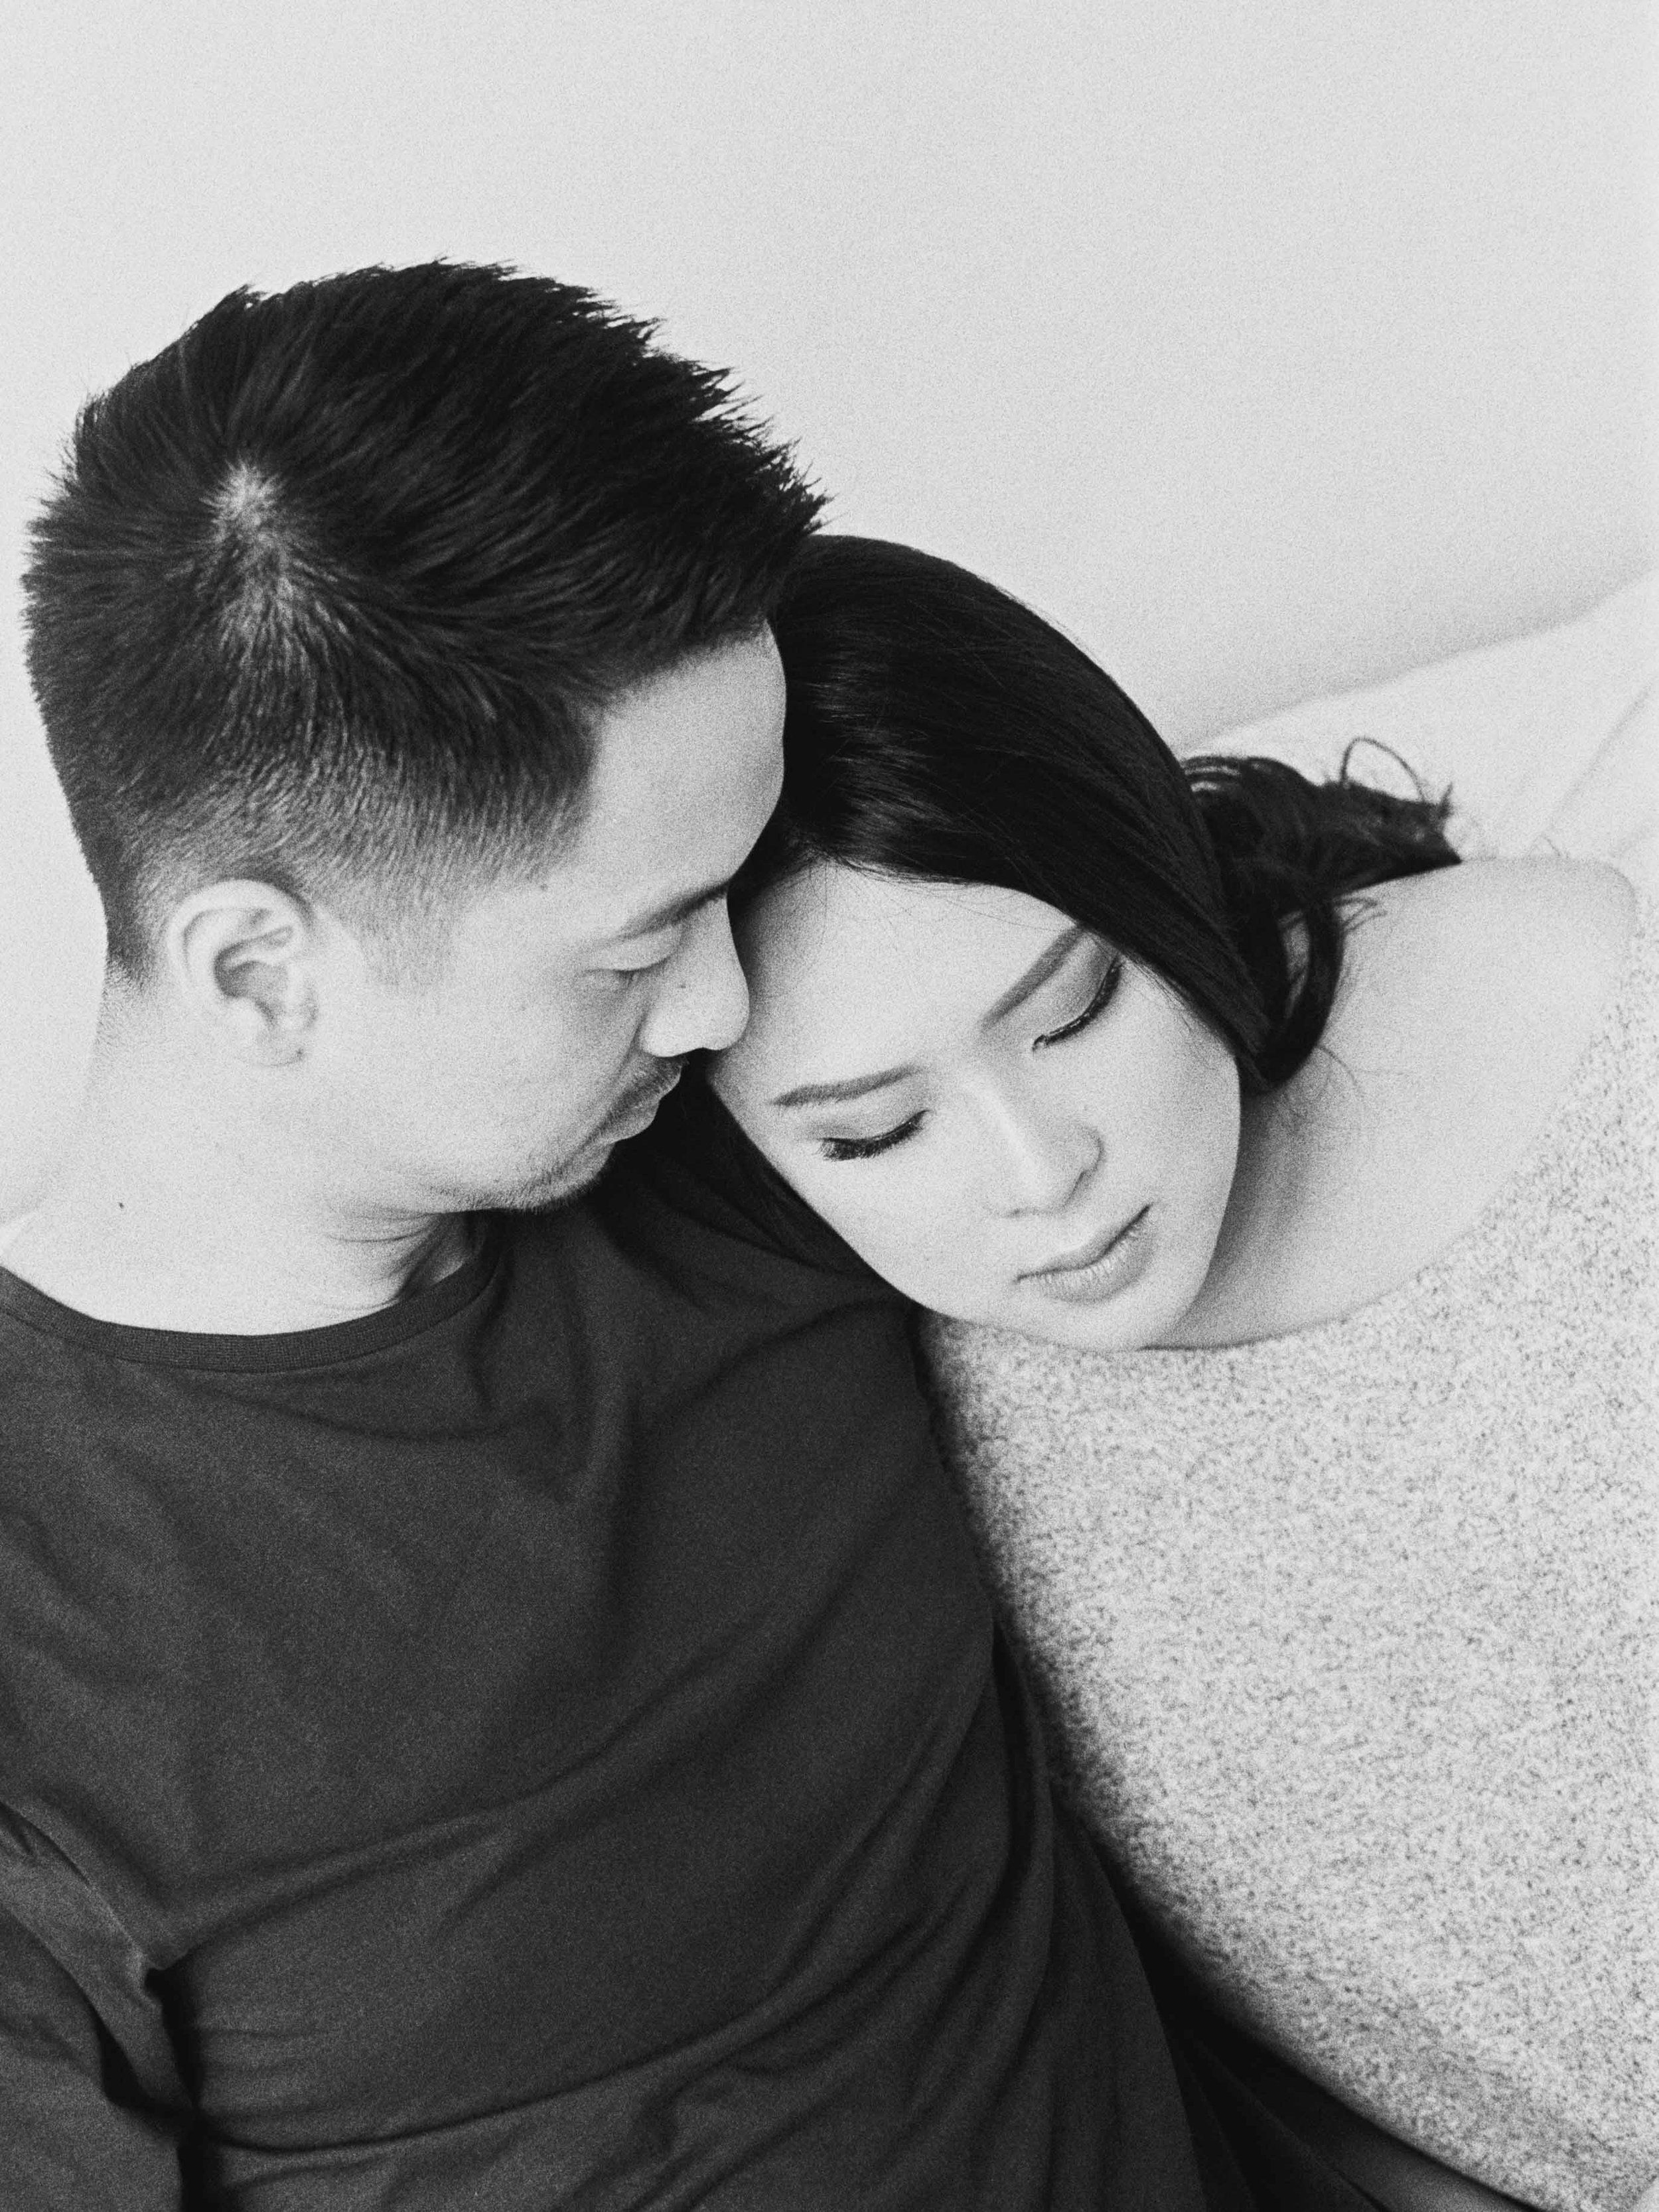 Gaby and Tim-Relaxed-Airy-Simple-Maternity Portrait Photoshoot-At Home-Jakarta-Studio June-Film Photography & Styling-11.jpg